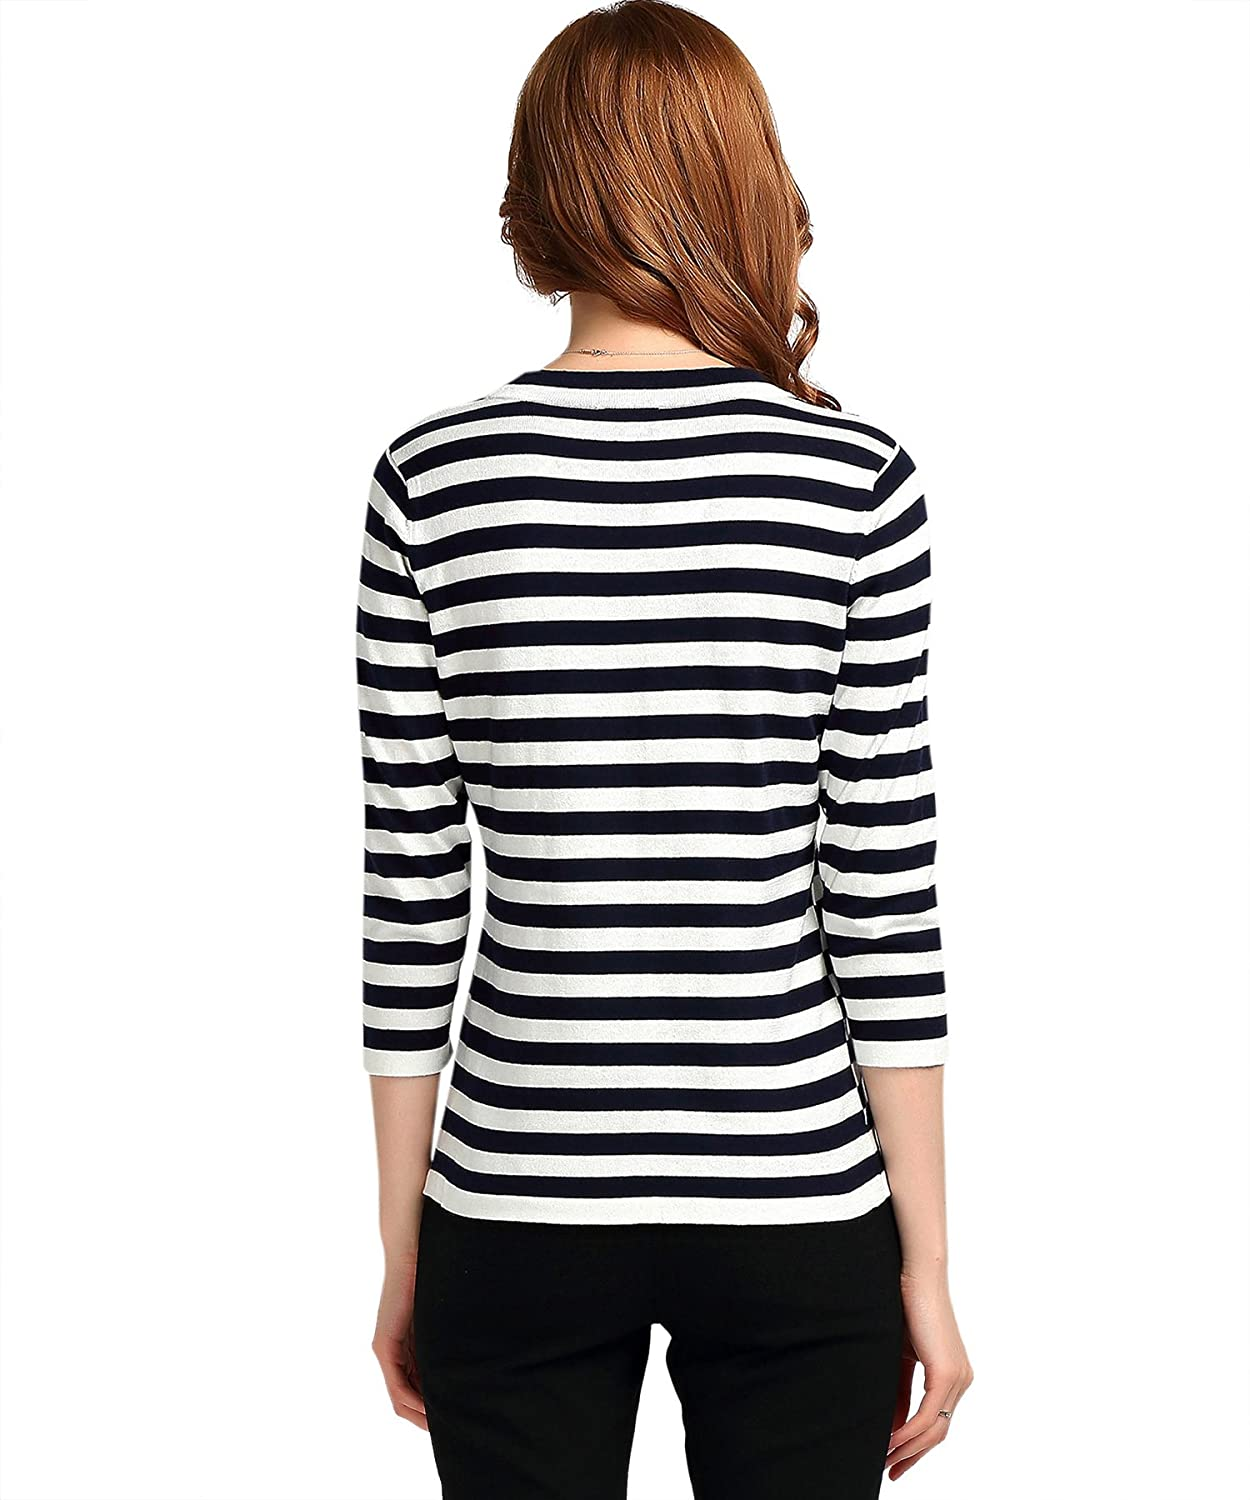 211b1b30755a87 YTUIEKY Black White Stripe Top Sweater 3/4 Sleeves For Women at Amazon  Women's Clothing store: